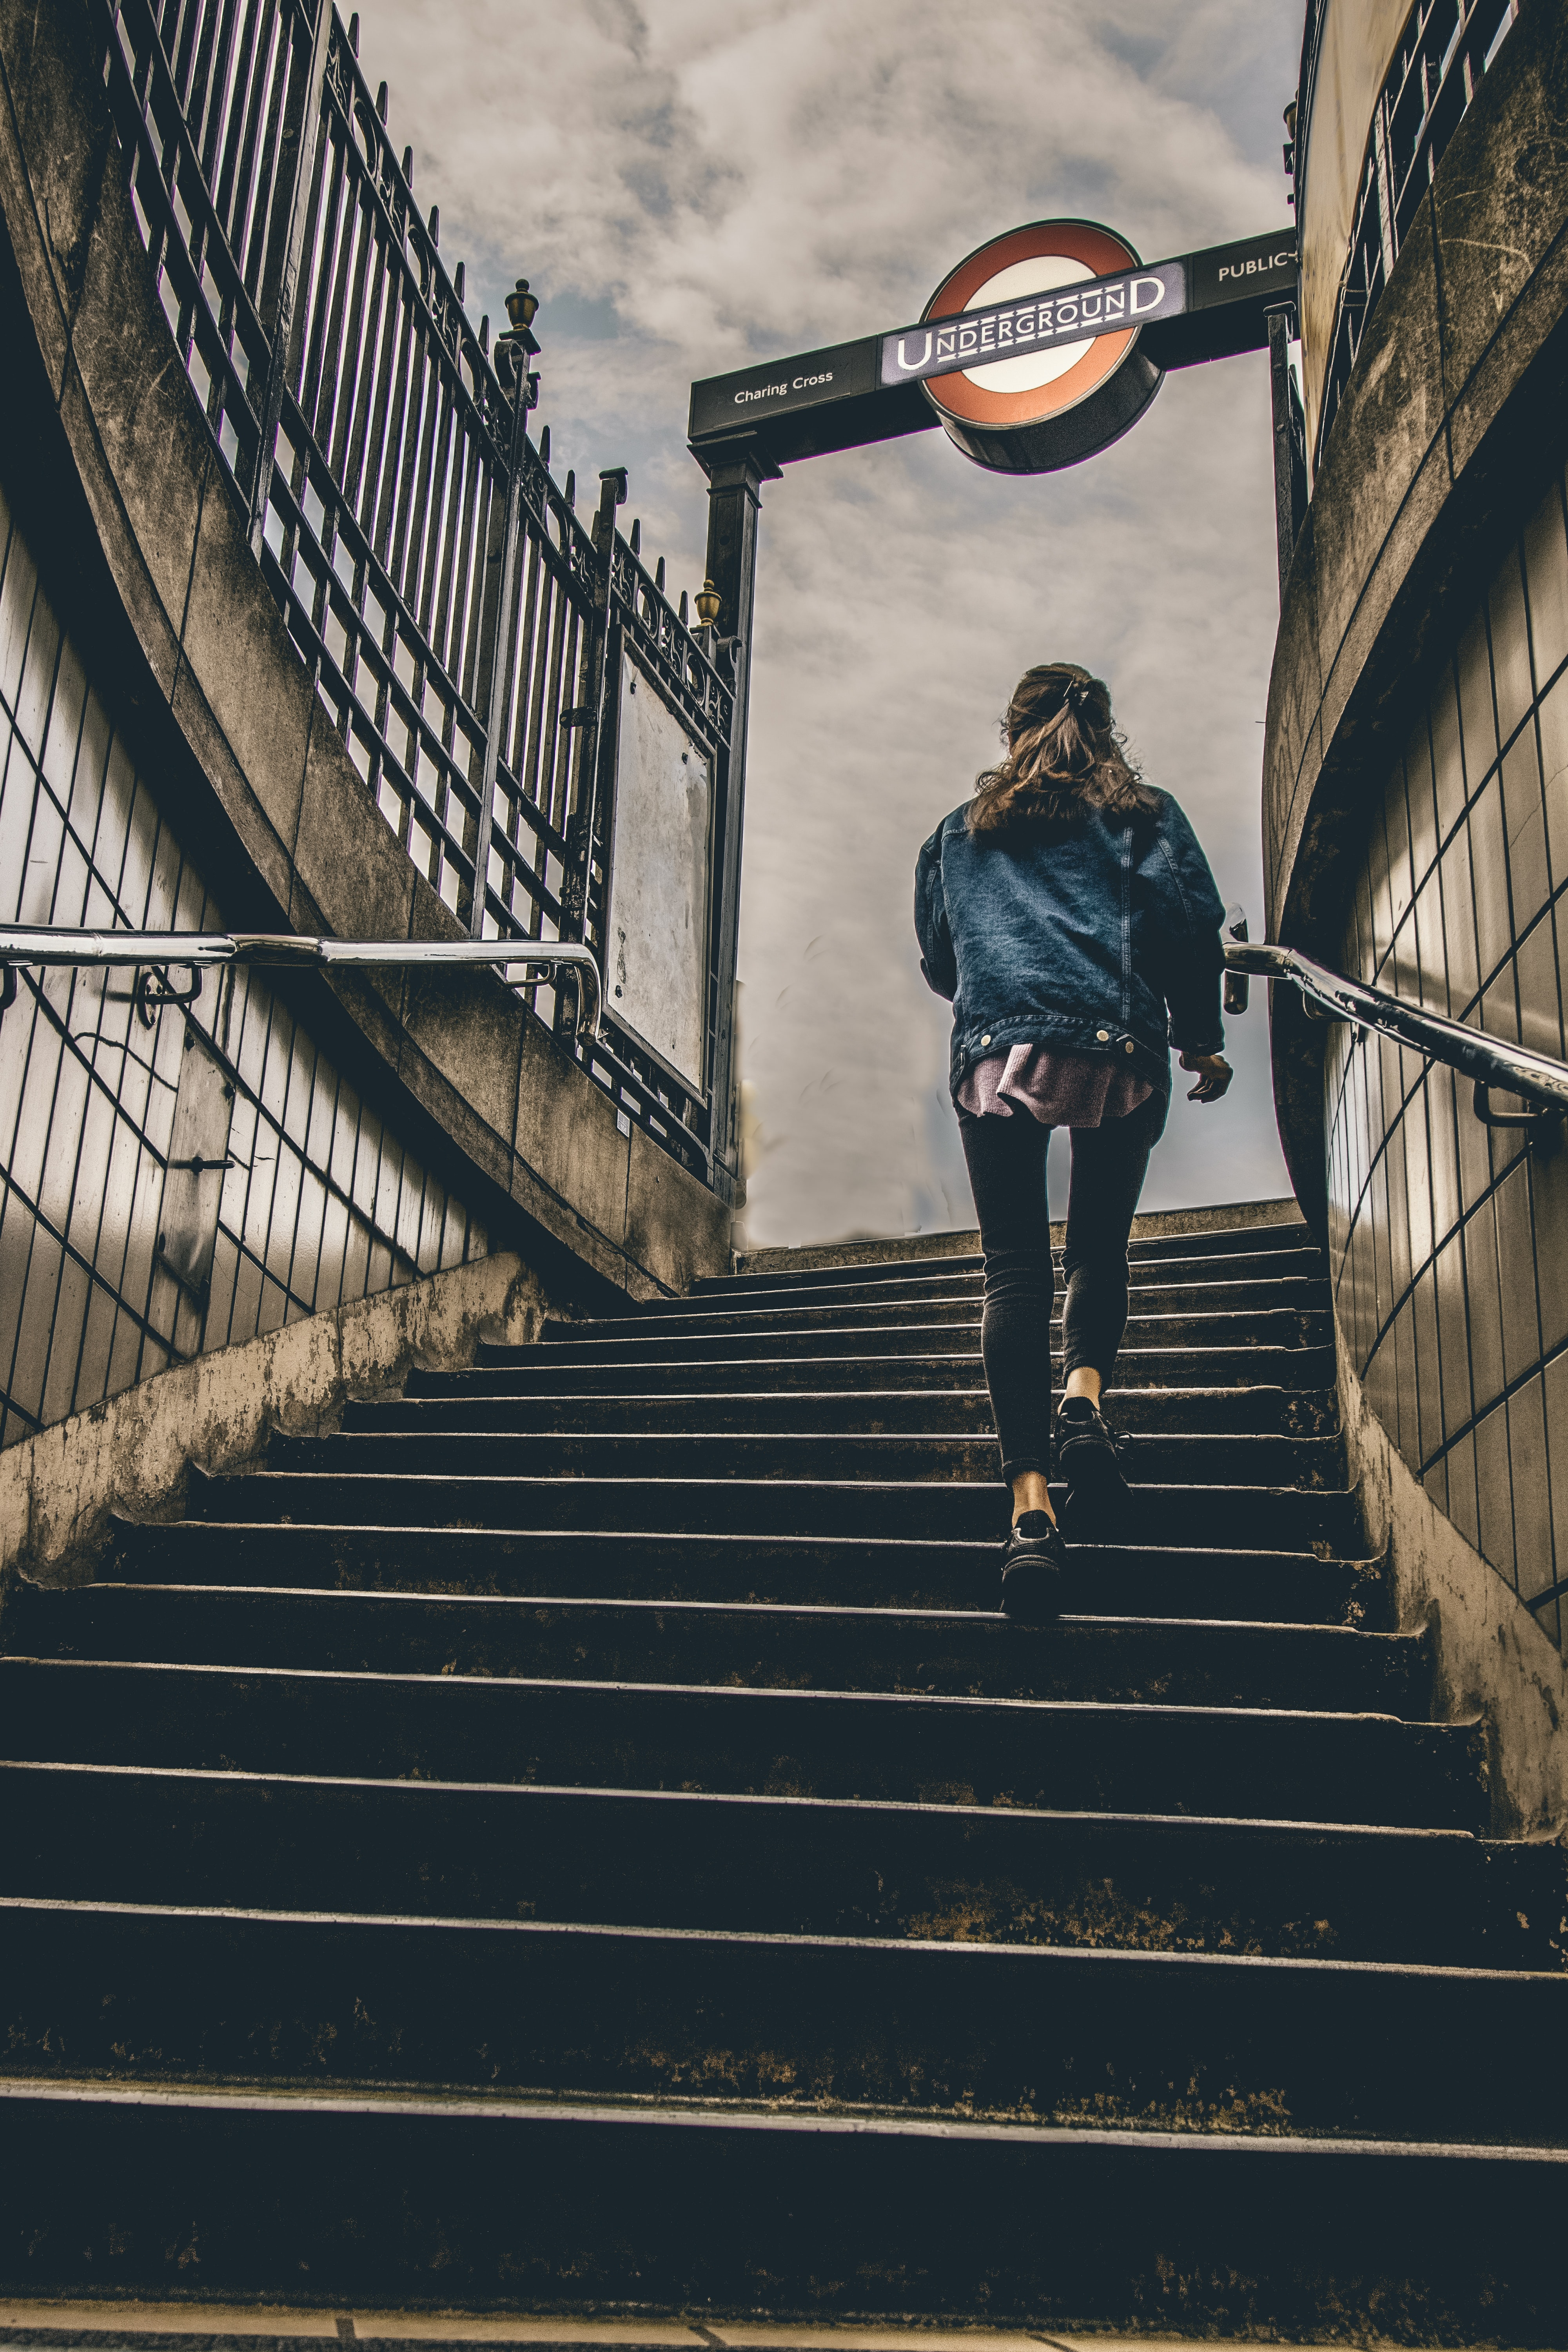 A woman climbing up the stairs at a London Underground station